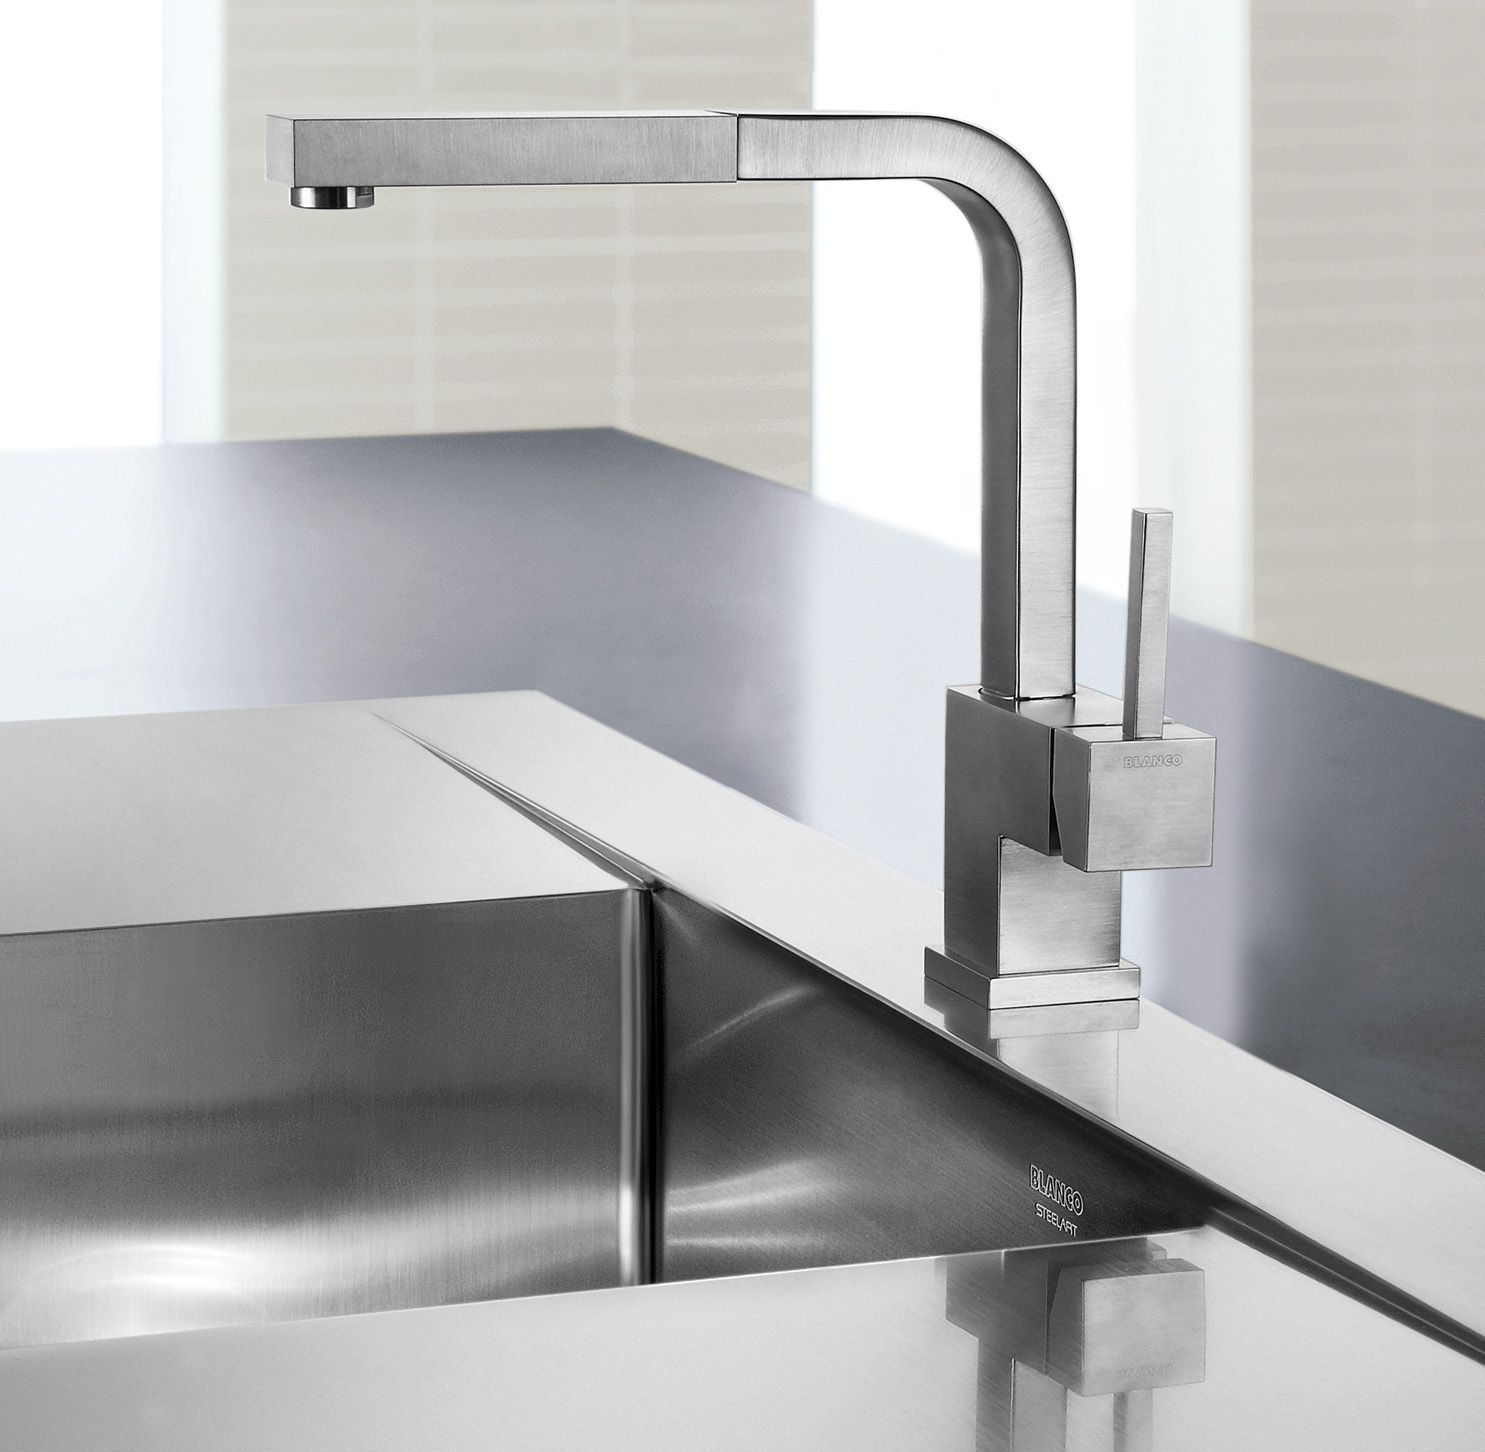 Inexpensive Costco Kitchen Faucets For Your Best Kitchen Faucet Idea Farmhouse Sink F Modern Kitchen Faucet Contemporary Kitchen Faucets Kitchen Faucet Design